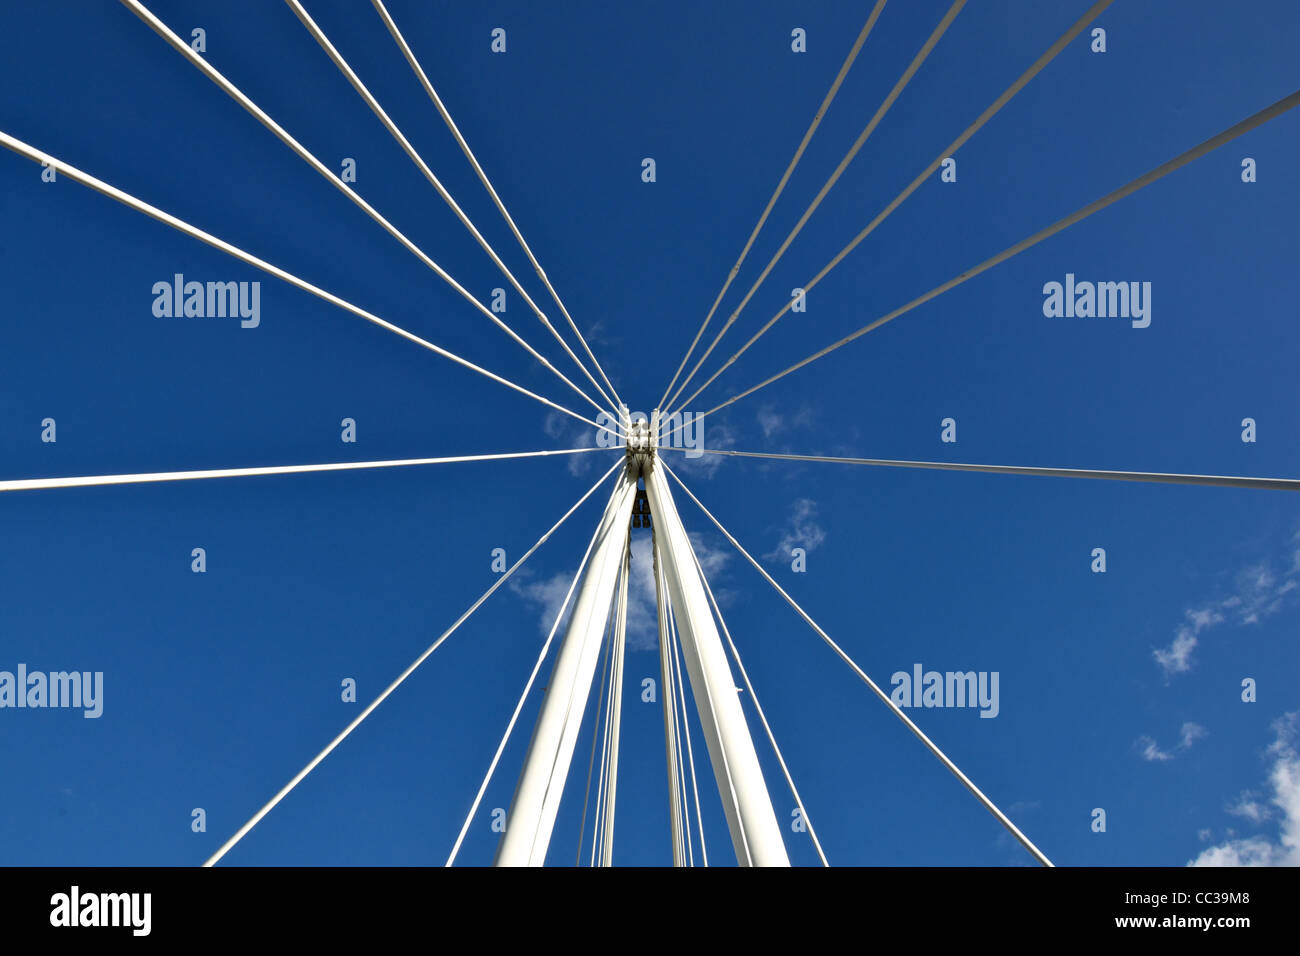 Detail of the Golden Jubilee Bridge over The Thames in London - Stock Image